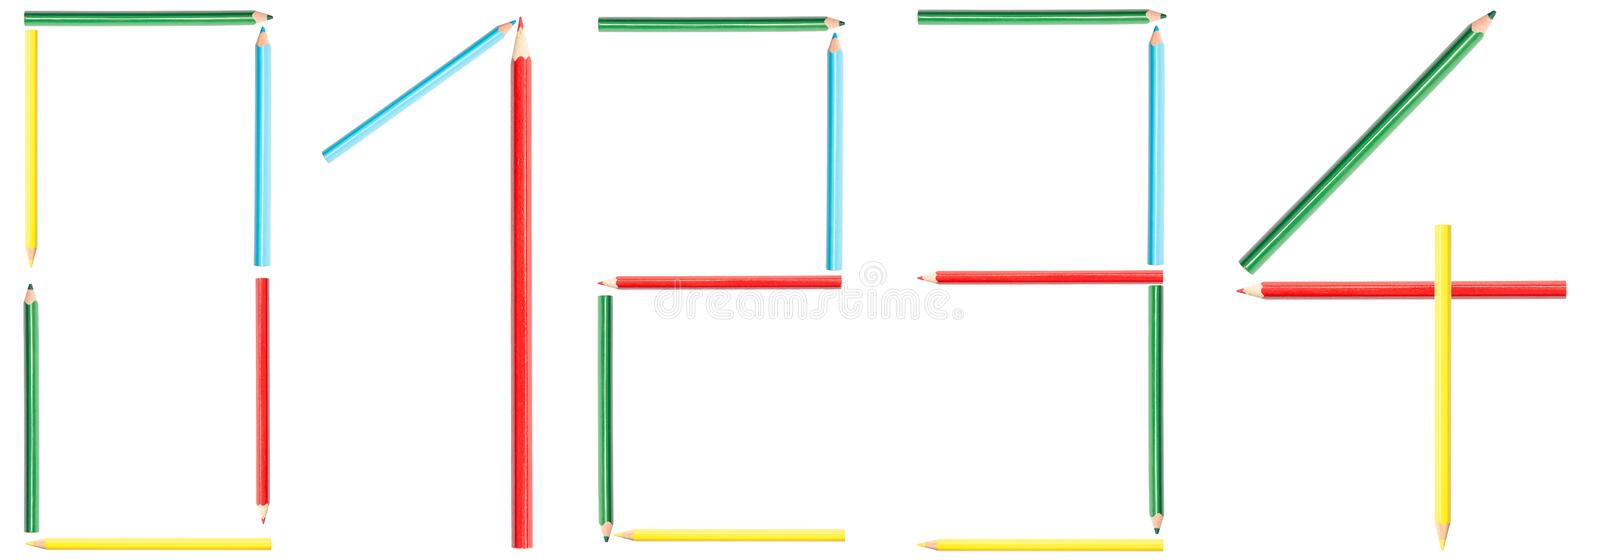 Coloring Pencils Numbers 0-4 royalty free stock image